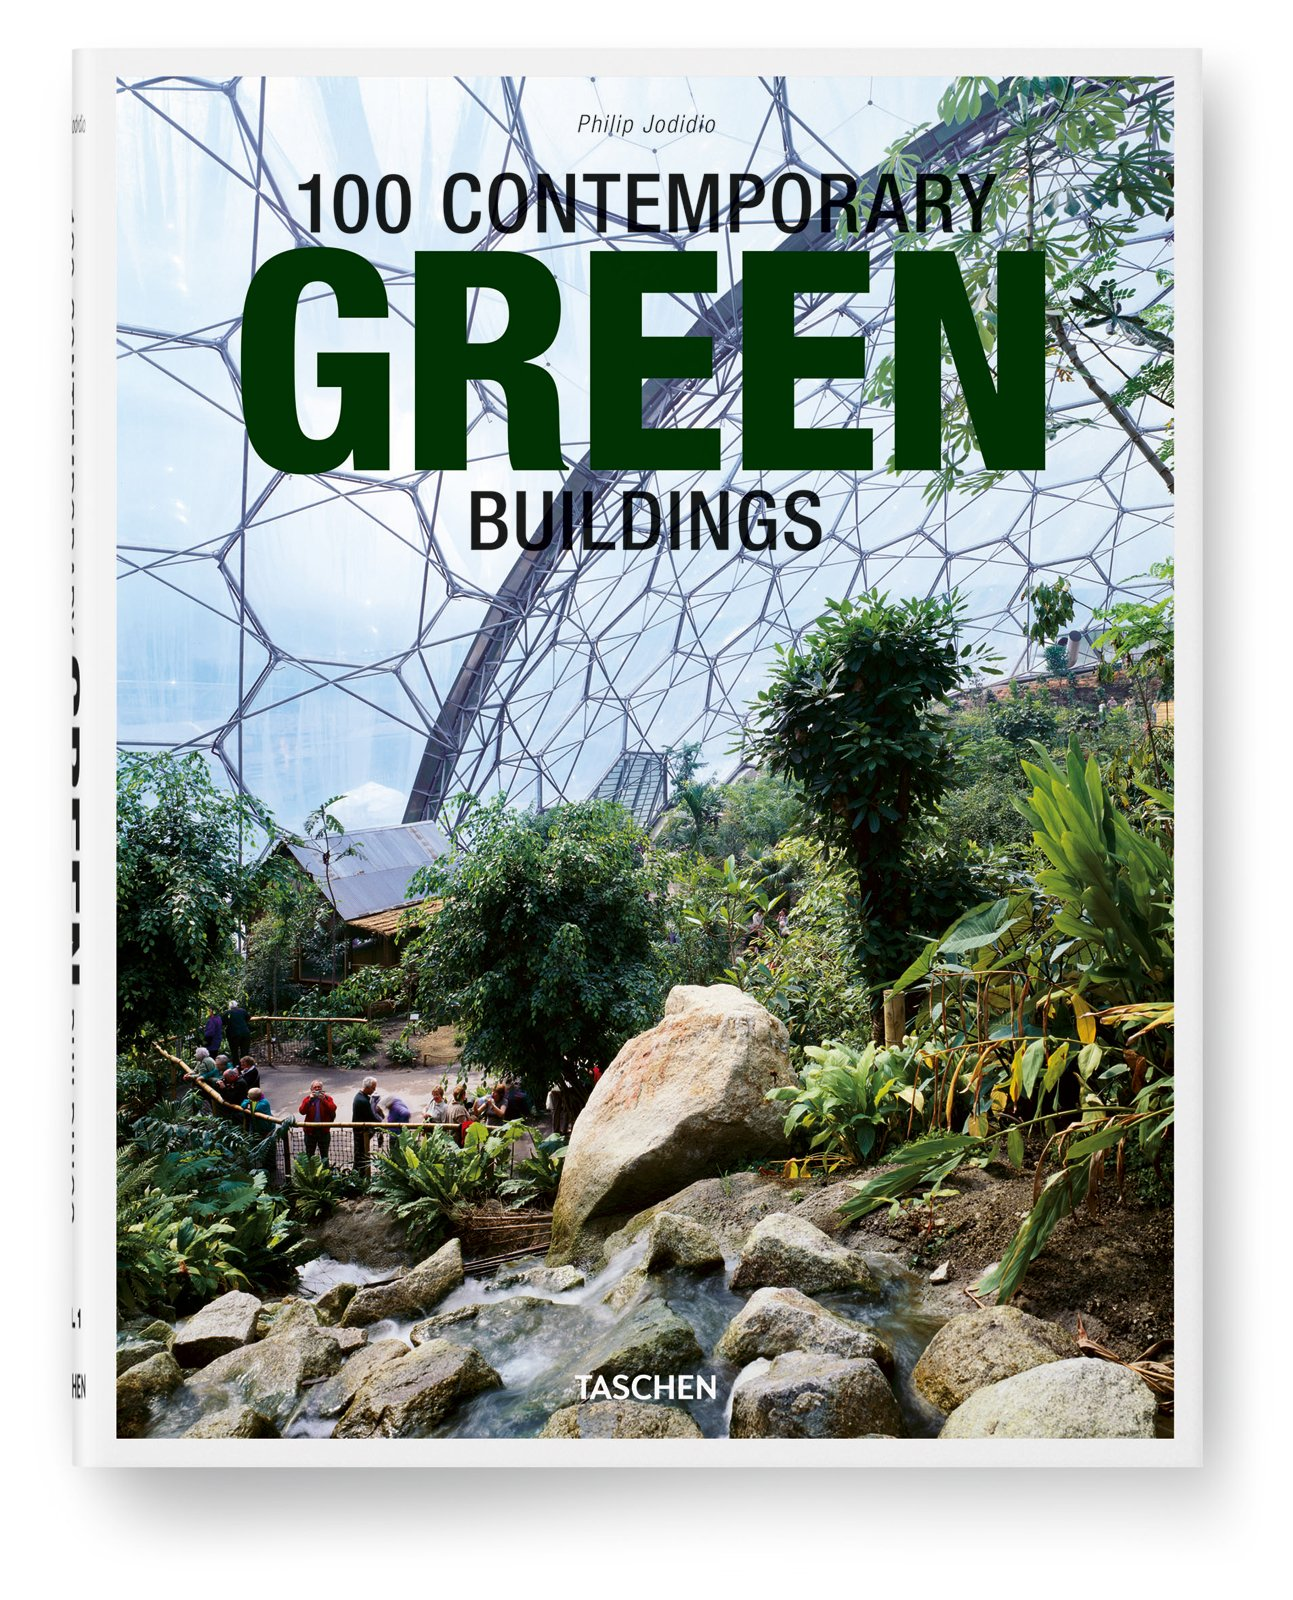 100 Contemporary Green Buildings, Volume 1 is available through Taschen  Photo 8 of 8 in 100 Contemporary Green Buildings